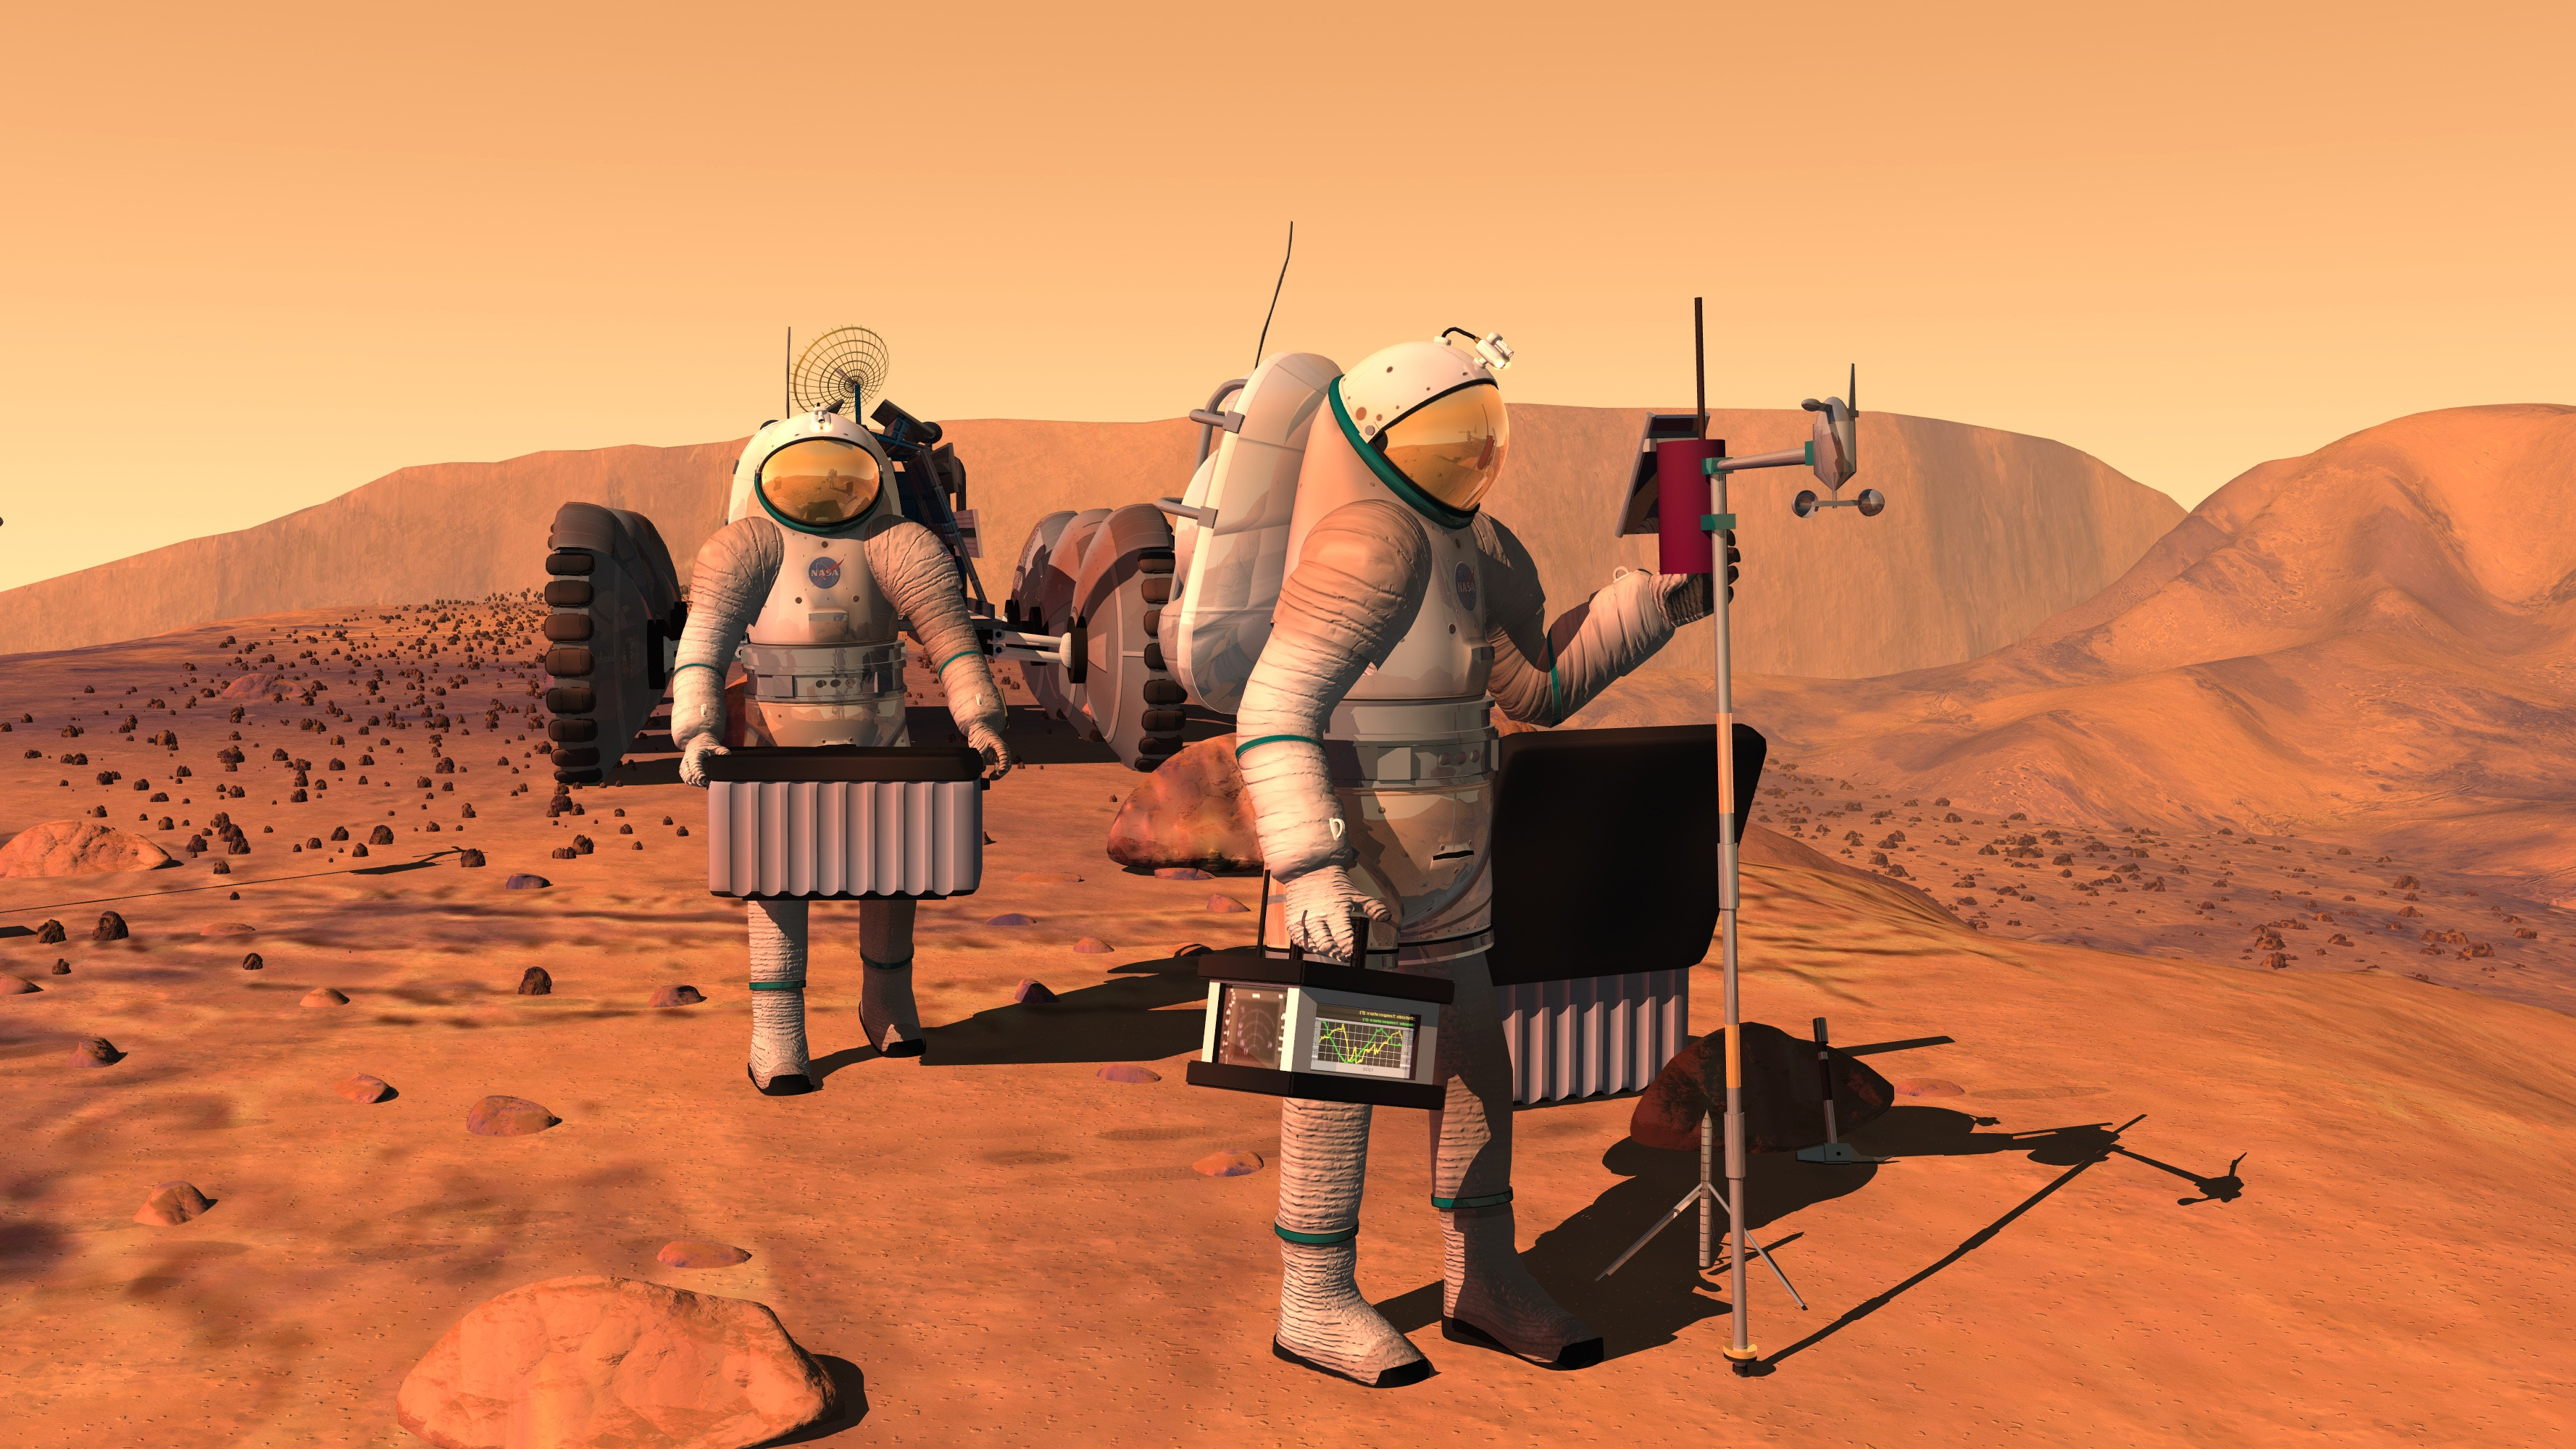 Artist's impression of men walking on Mars